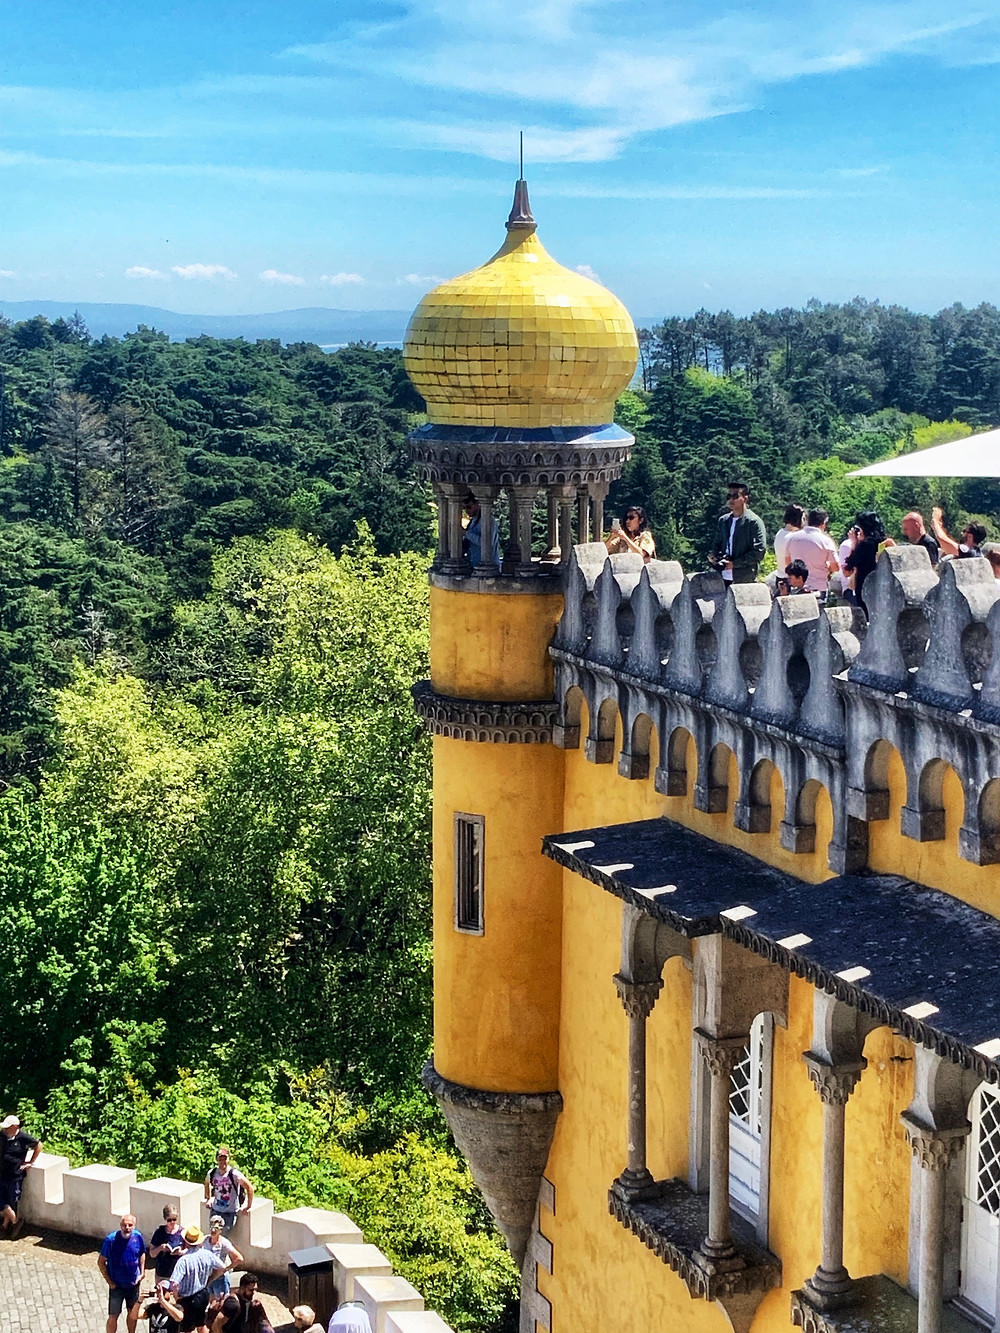 the yellow ceramic onion dome at Pena Palace